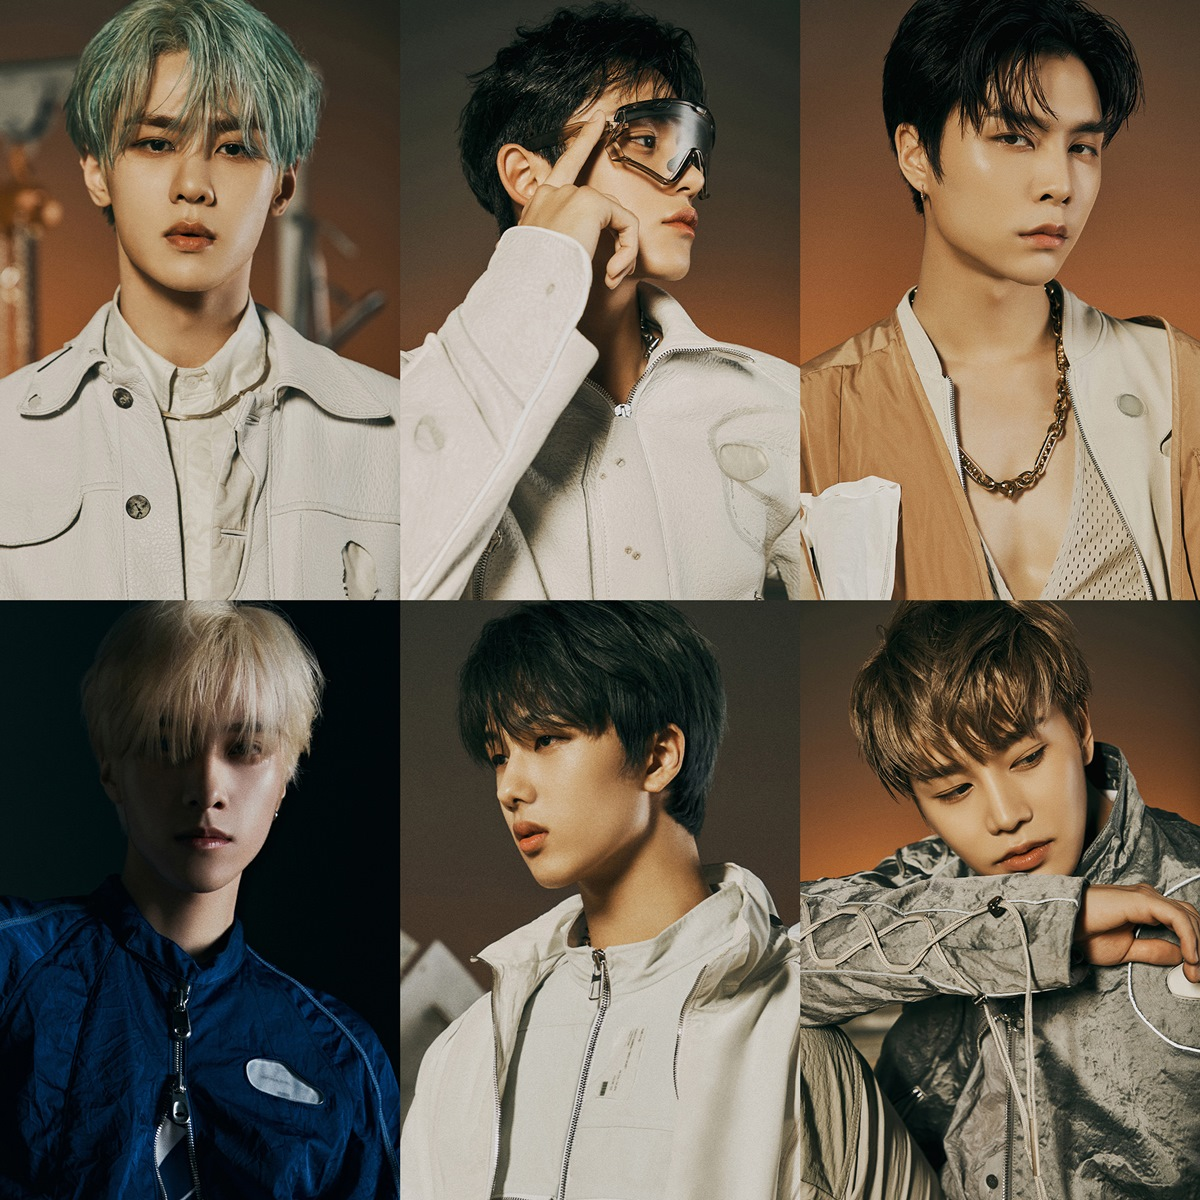 Image 2 [NCT – The 2nd Album RESONANCE Pt.1]  แถวบน (KUN, LUCAS, JOHNNY) แถวล่าง (HENDERY, JISUNG, TAEIL)